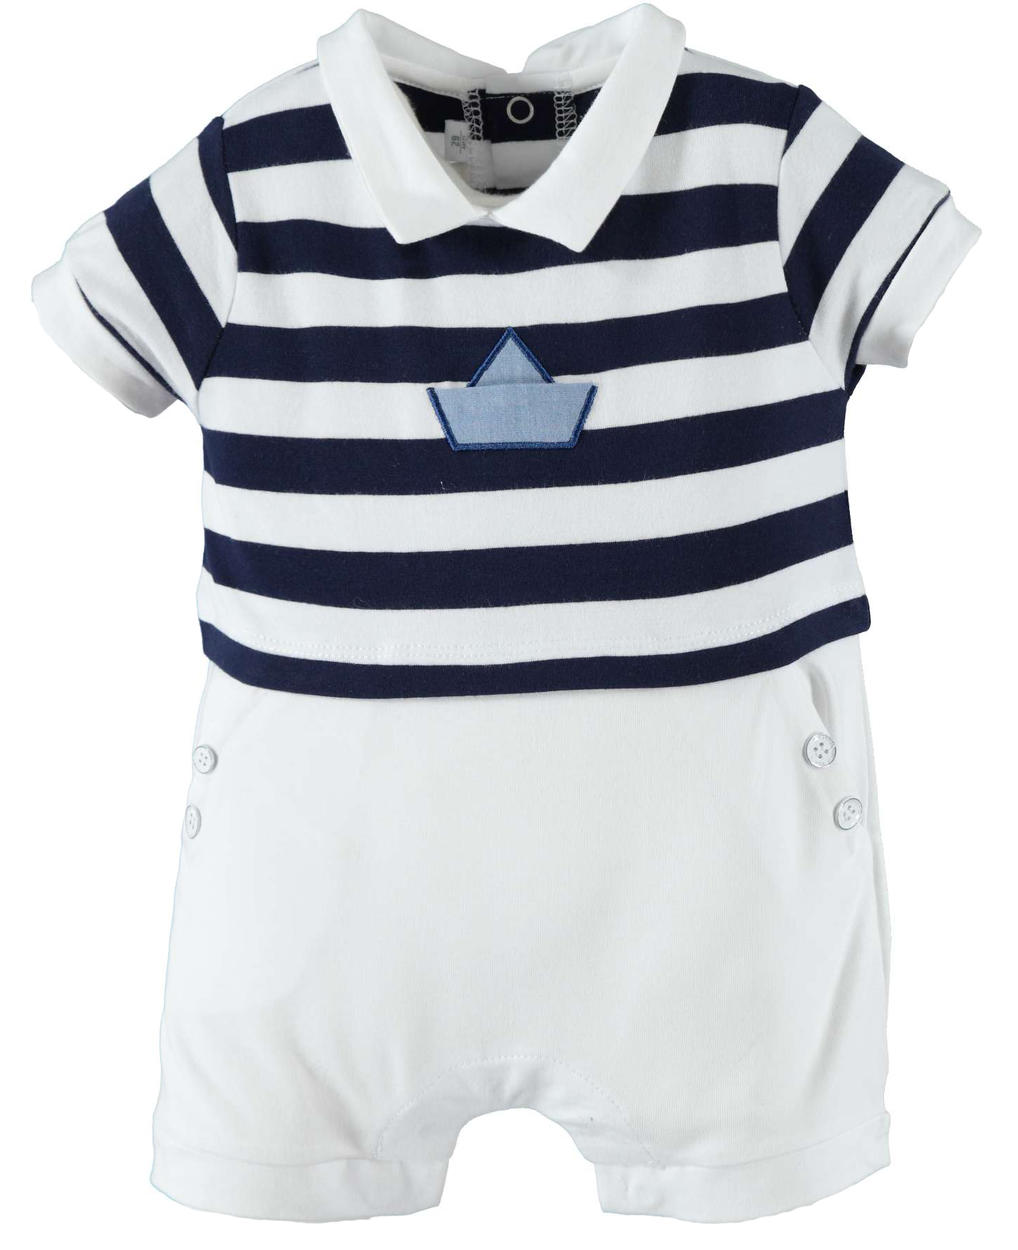 ecc053341 Cotton romper suit baby boy with navy style bodice for newborn from ...